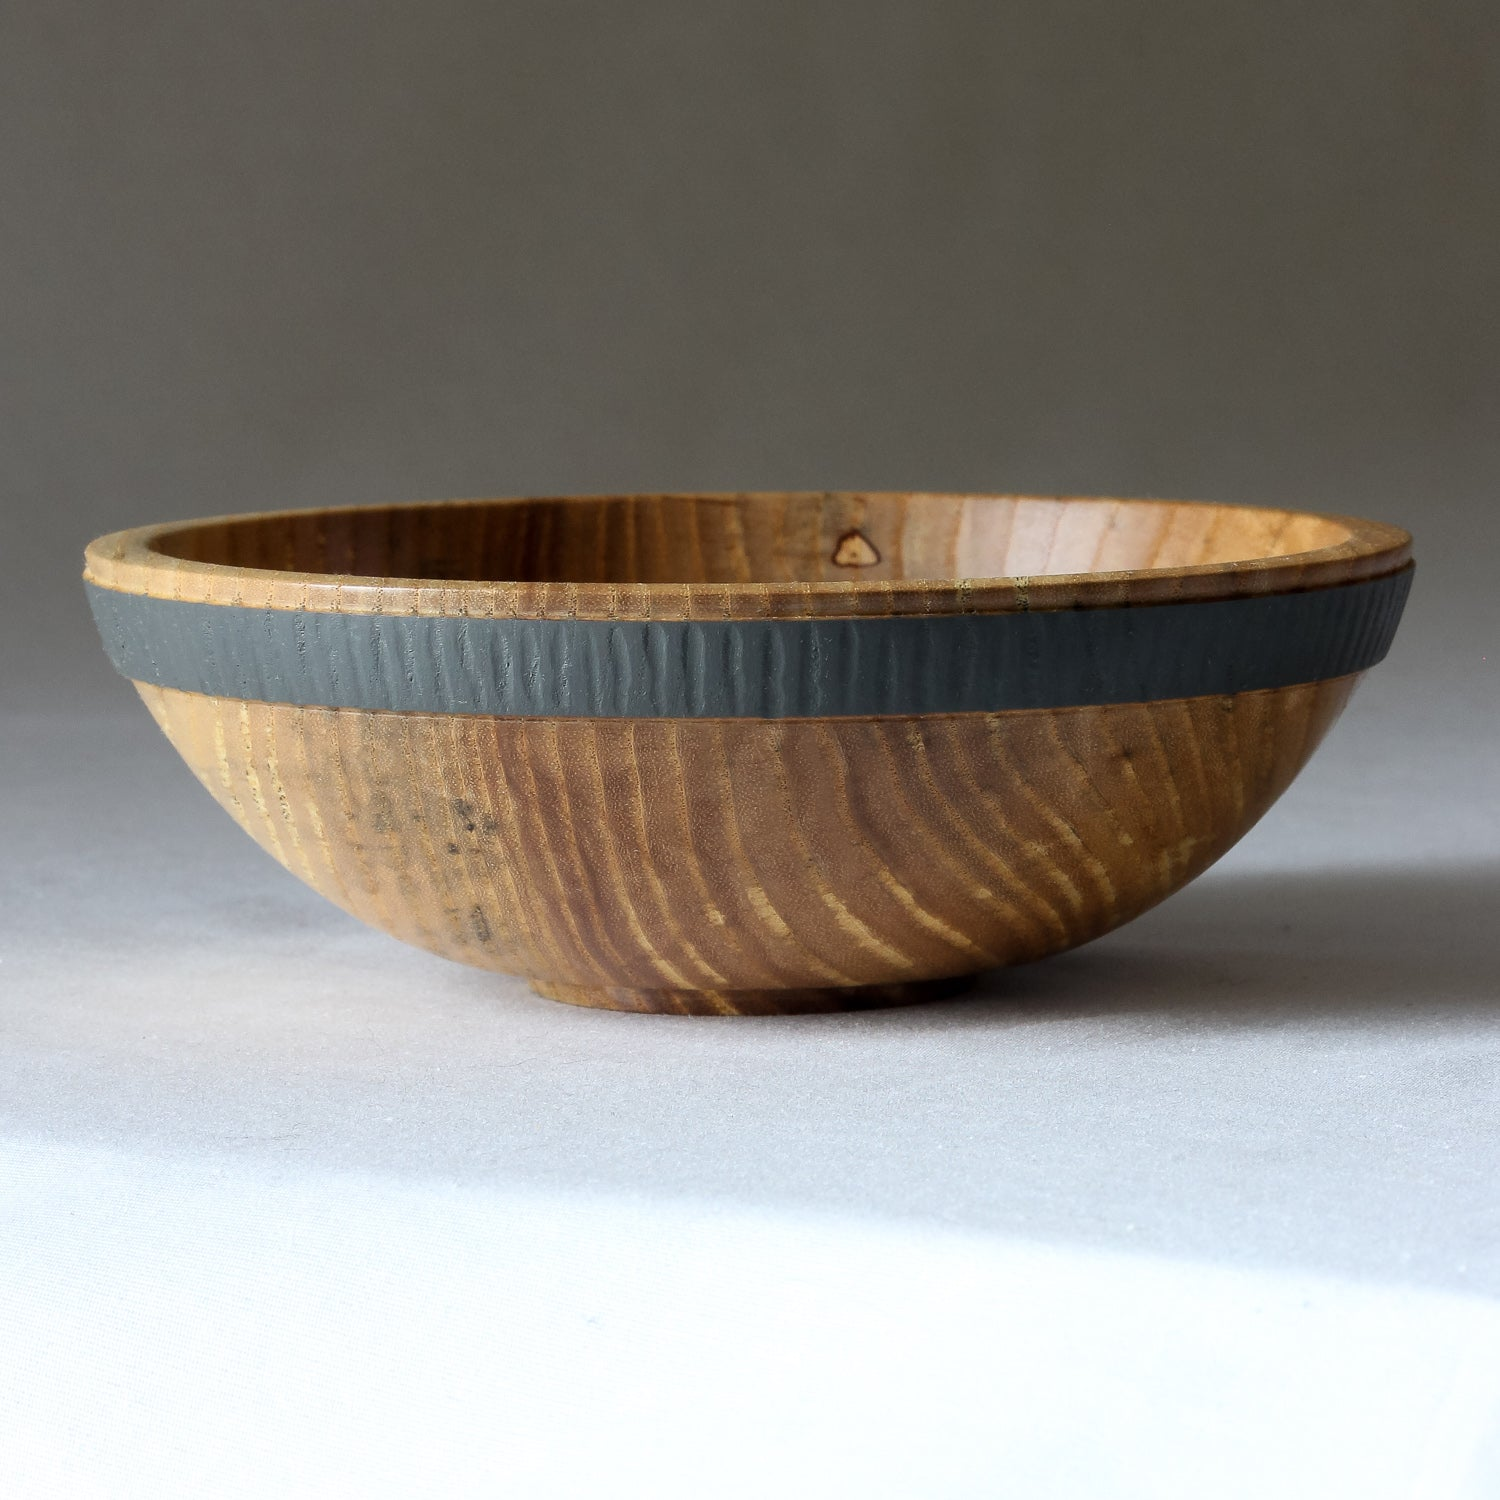 Small Olive Ash Bowl with Textured Colored Band